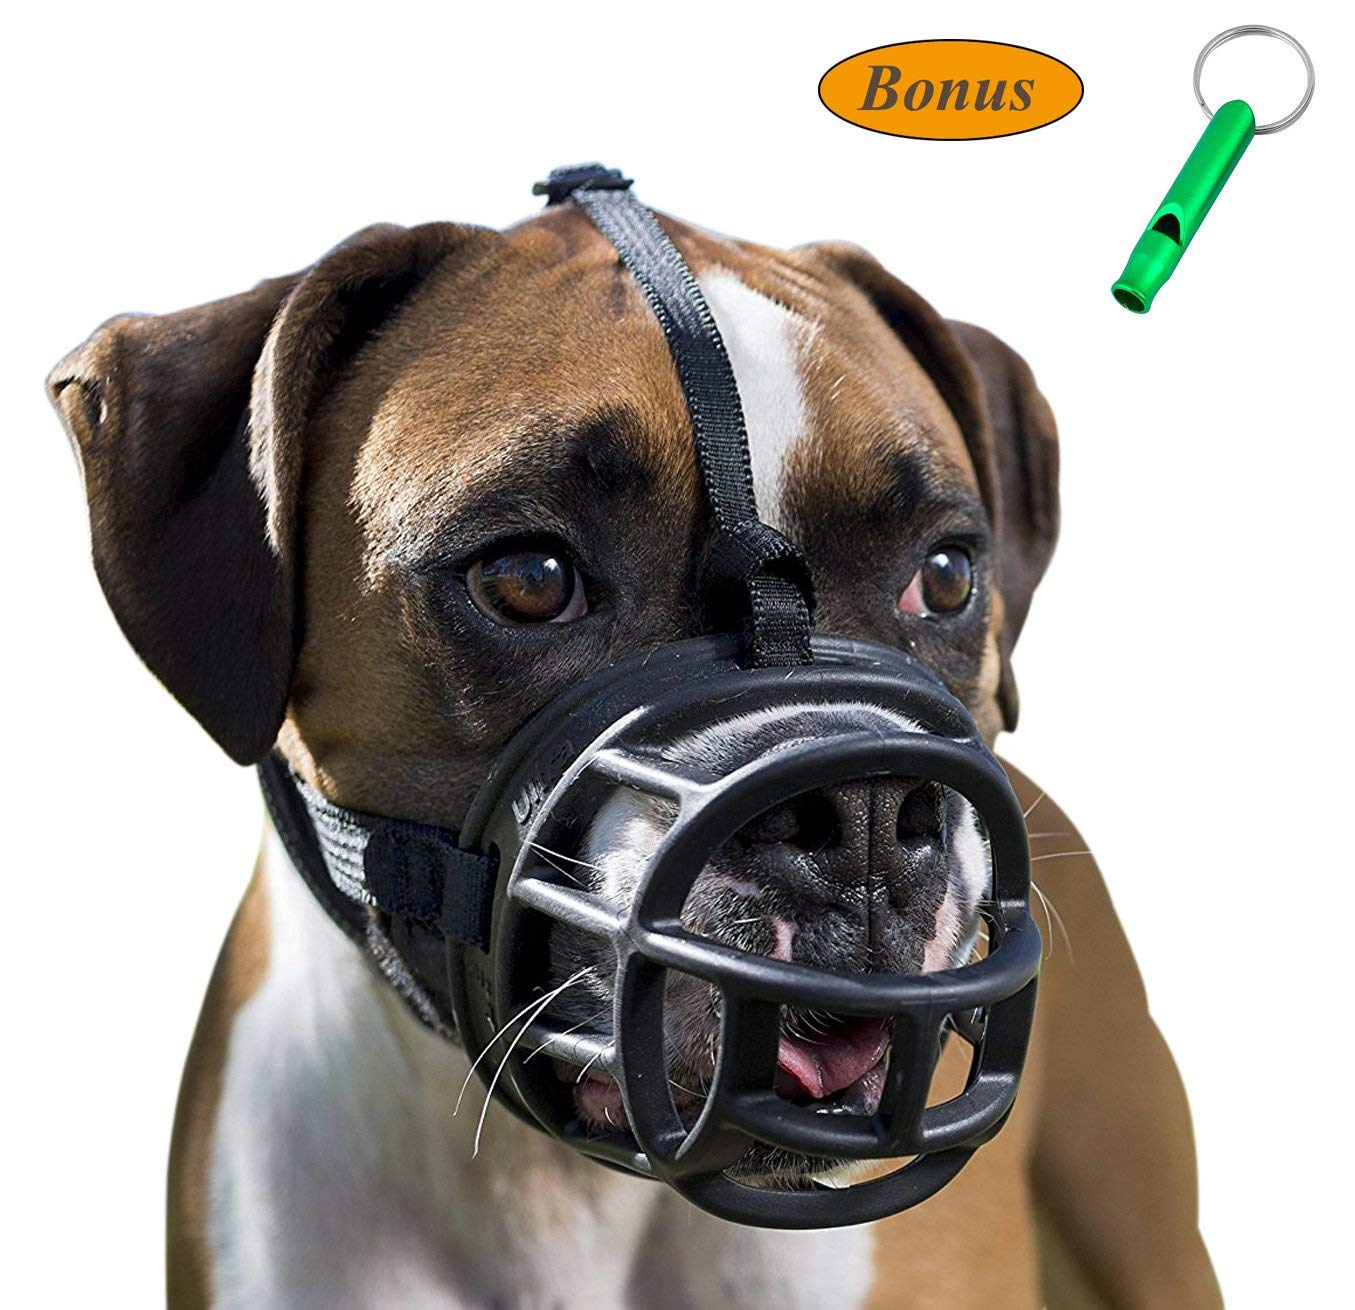 JeonbiuPet Pet Dog Muzzles, Dog Mouth Cover Soft Adjustable Breathable Silicone Dog Basket Muzzle for Training Biting Barking Chewing Panting